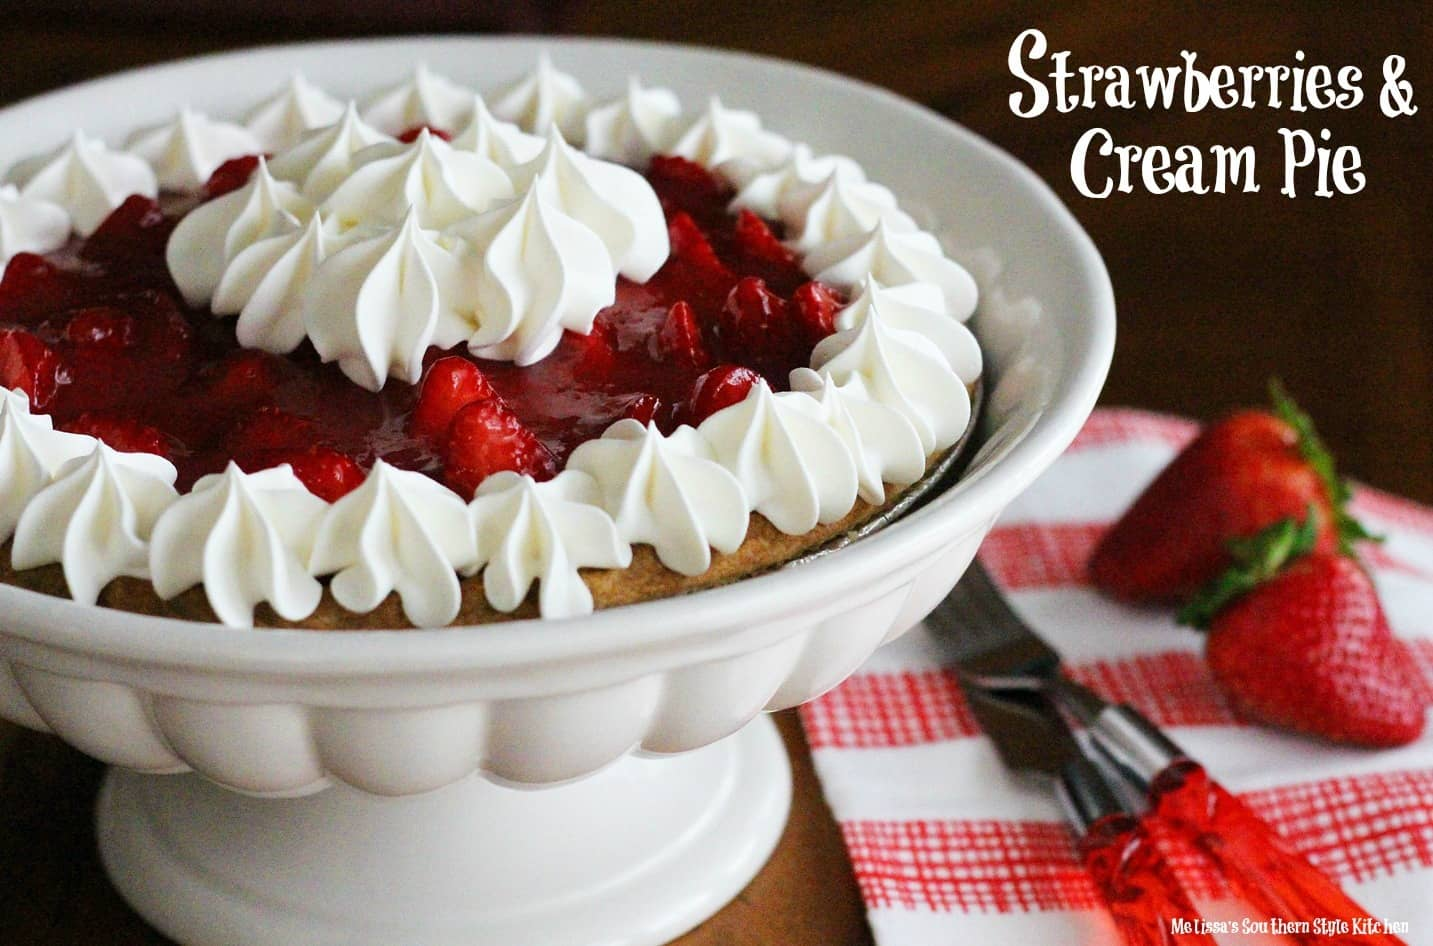 Strawberries and Cream Pie - Chocolate Chocolate and More!